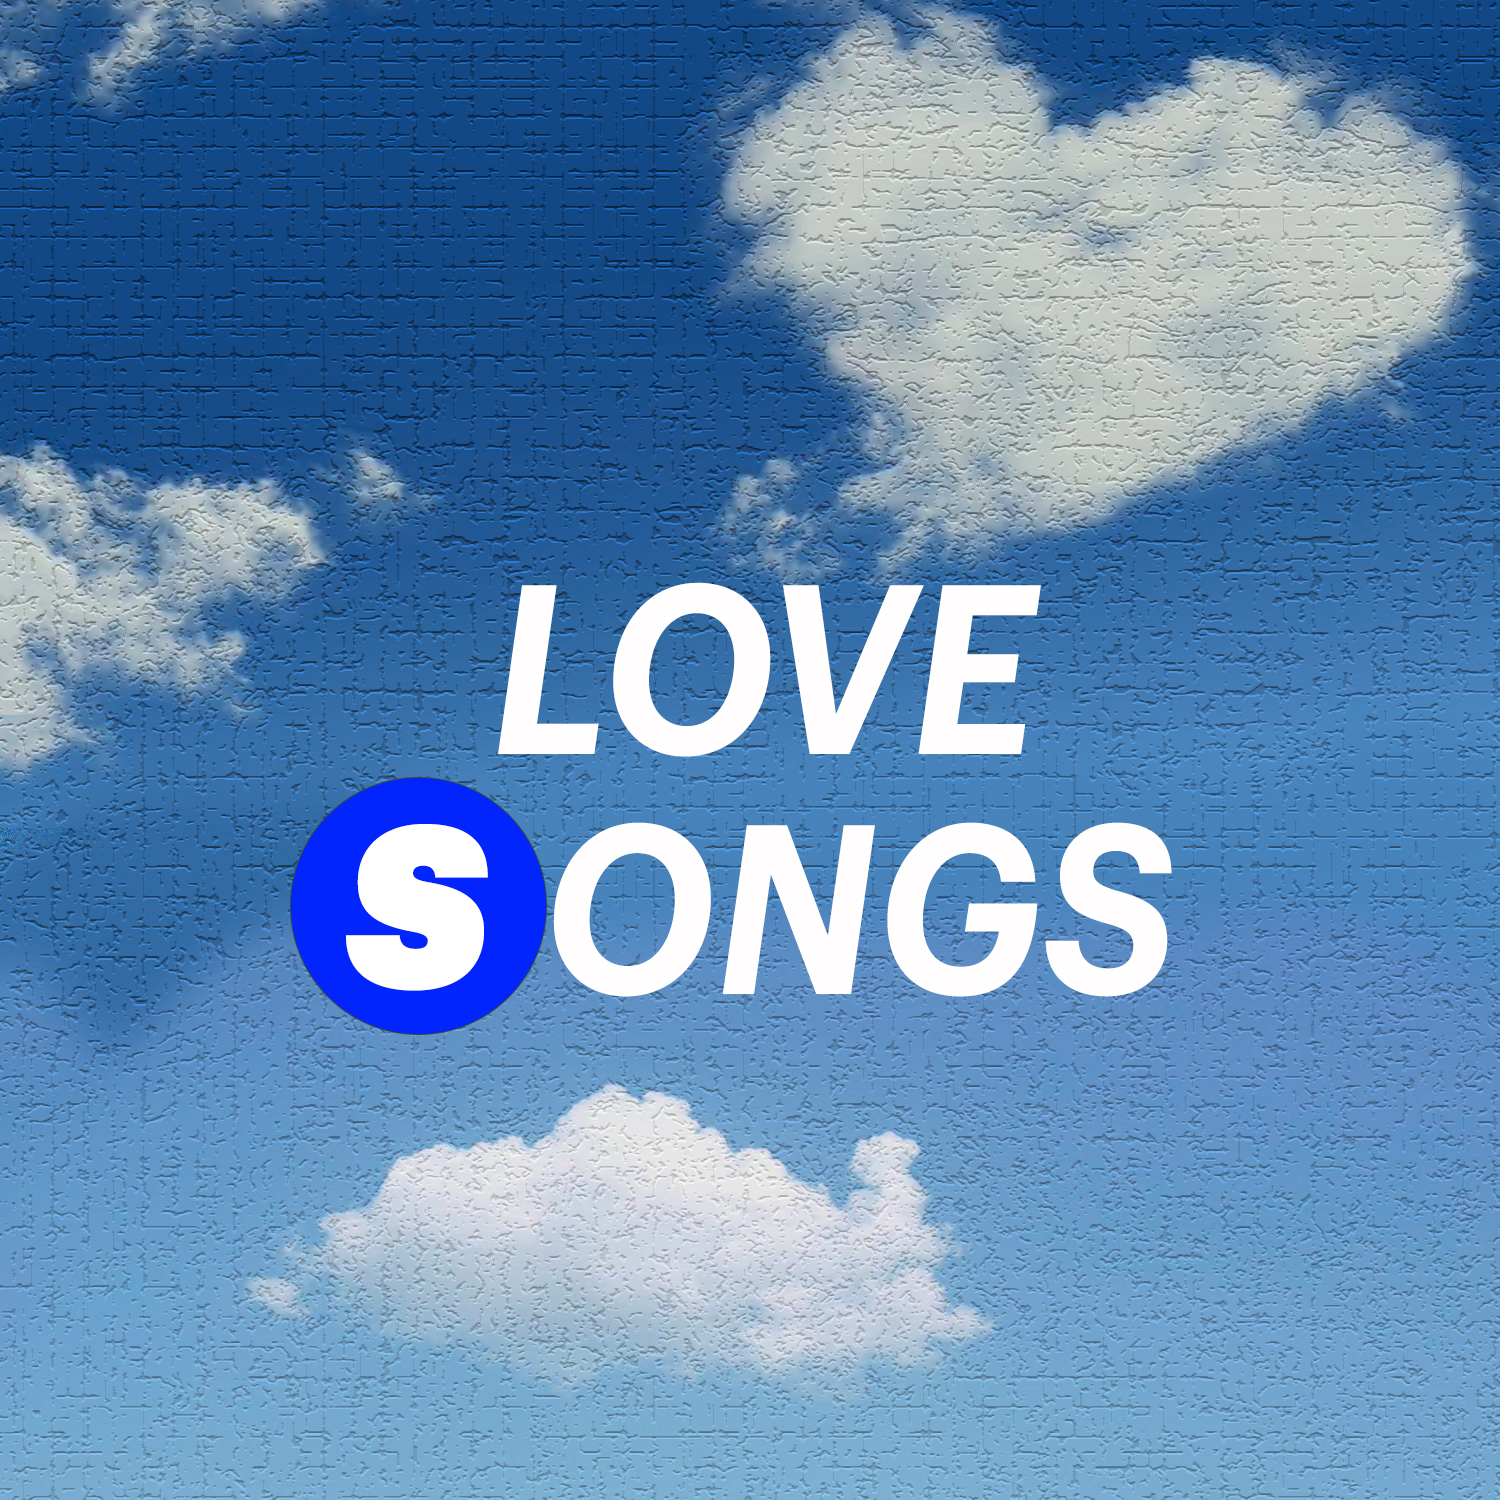 Love song compilation